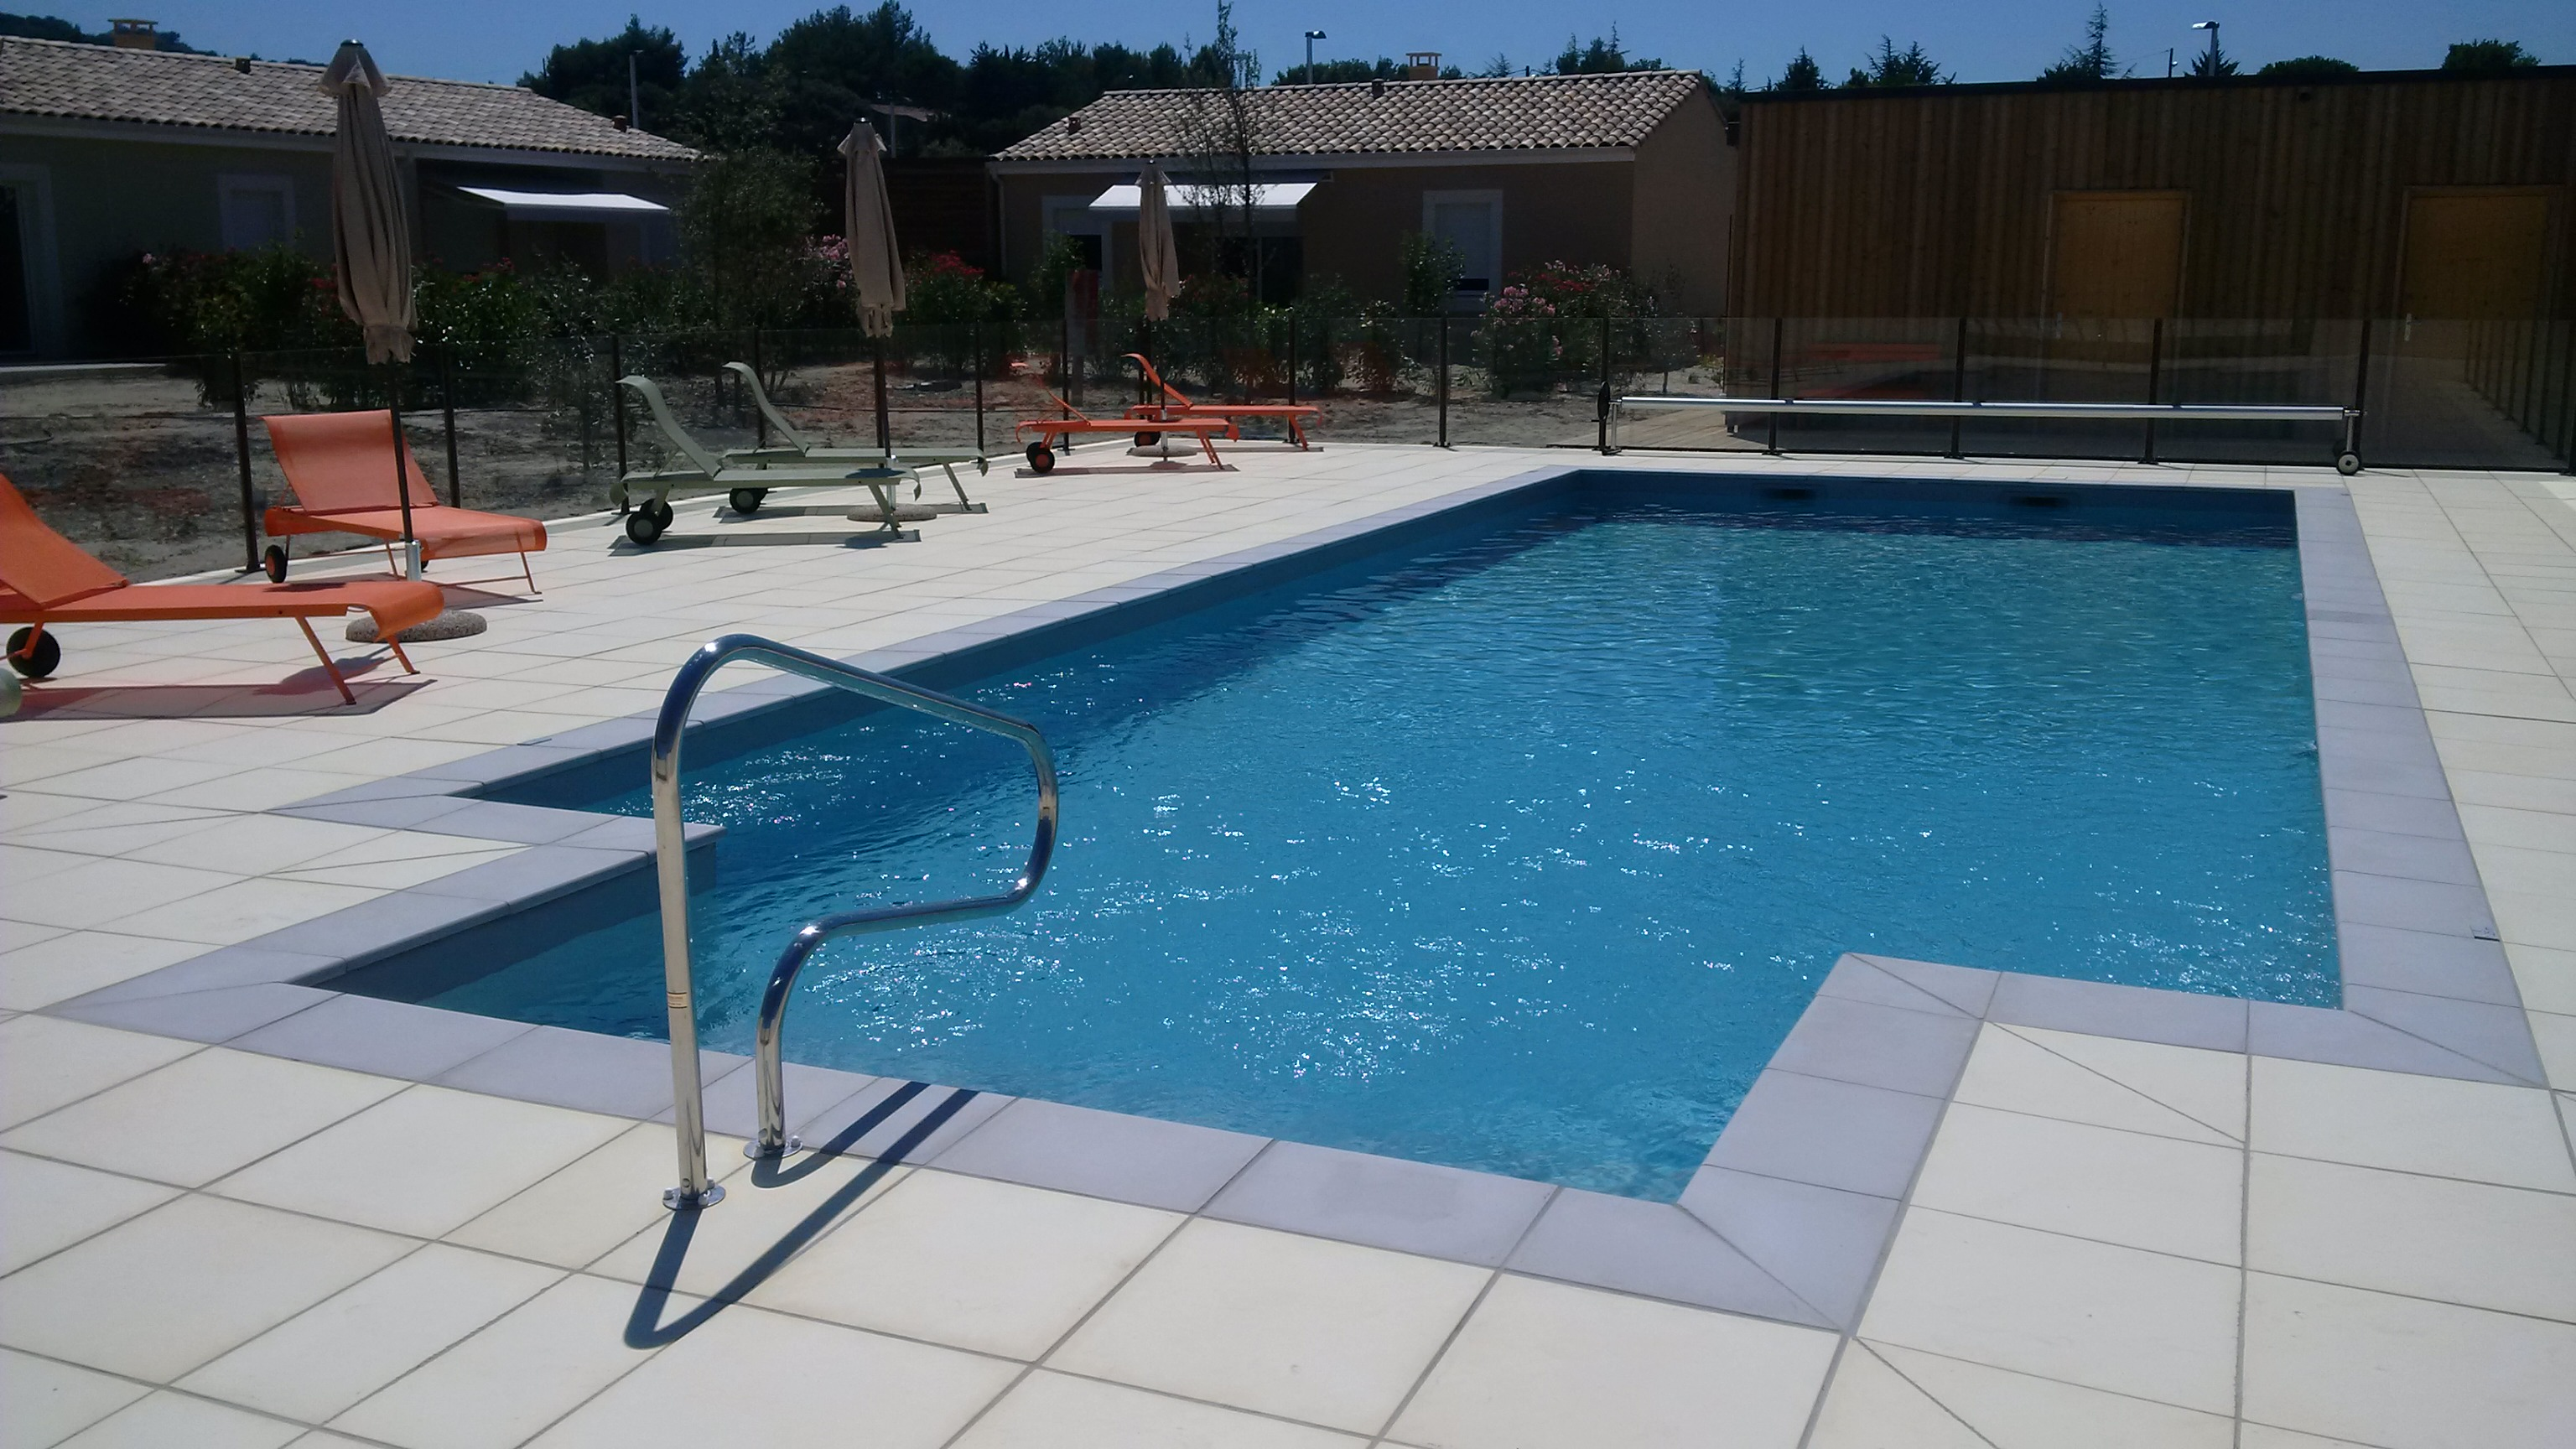 La piscine collective piscines traditionnelles brignoles for Revetement piscine pvc arme